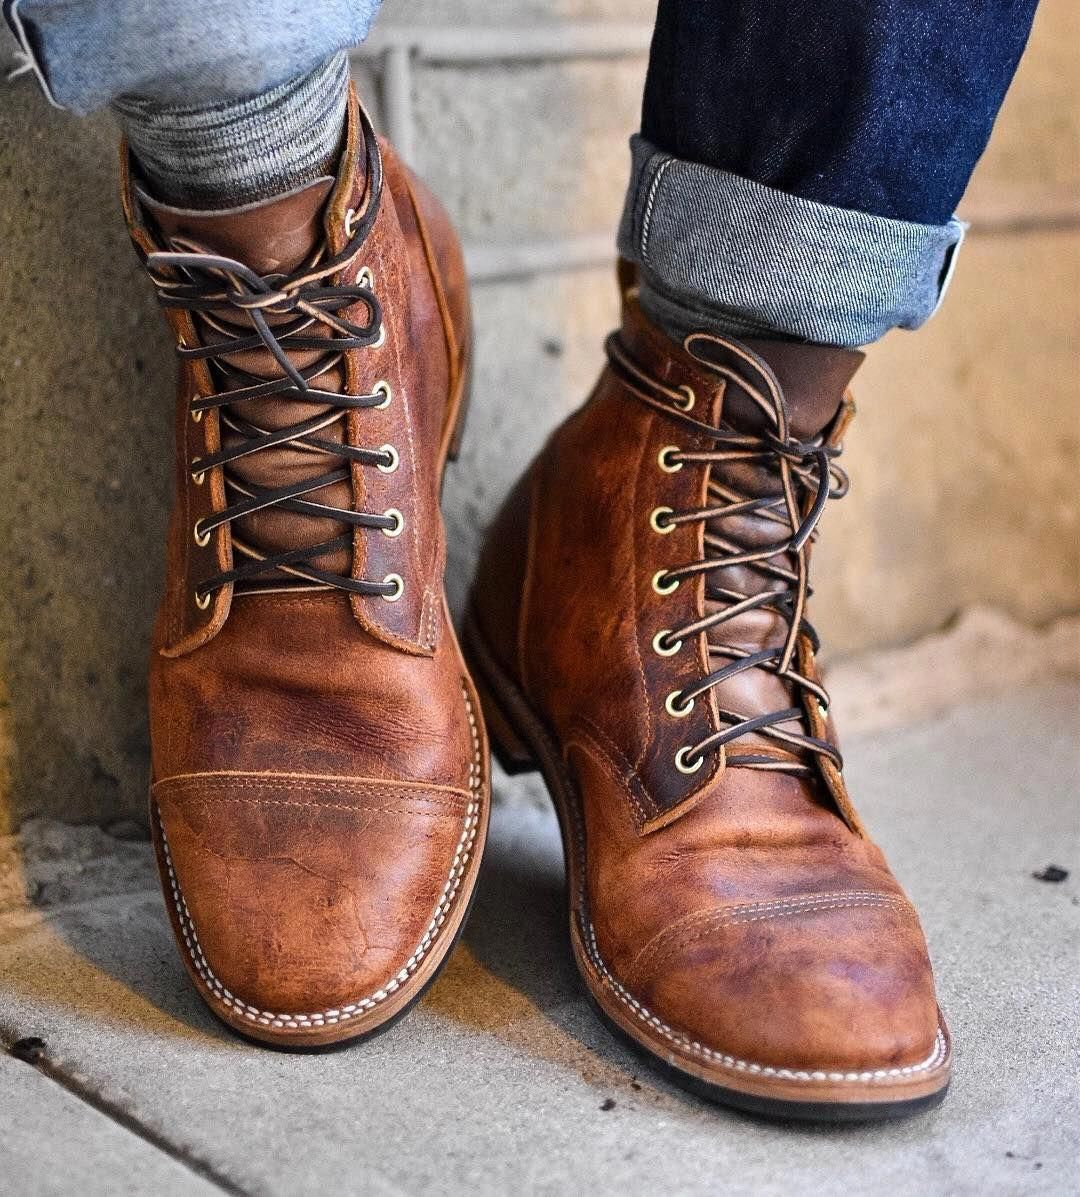 Chaussure homme cuir, Bottes homme